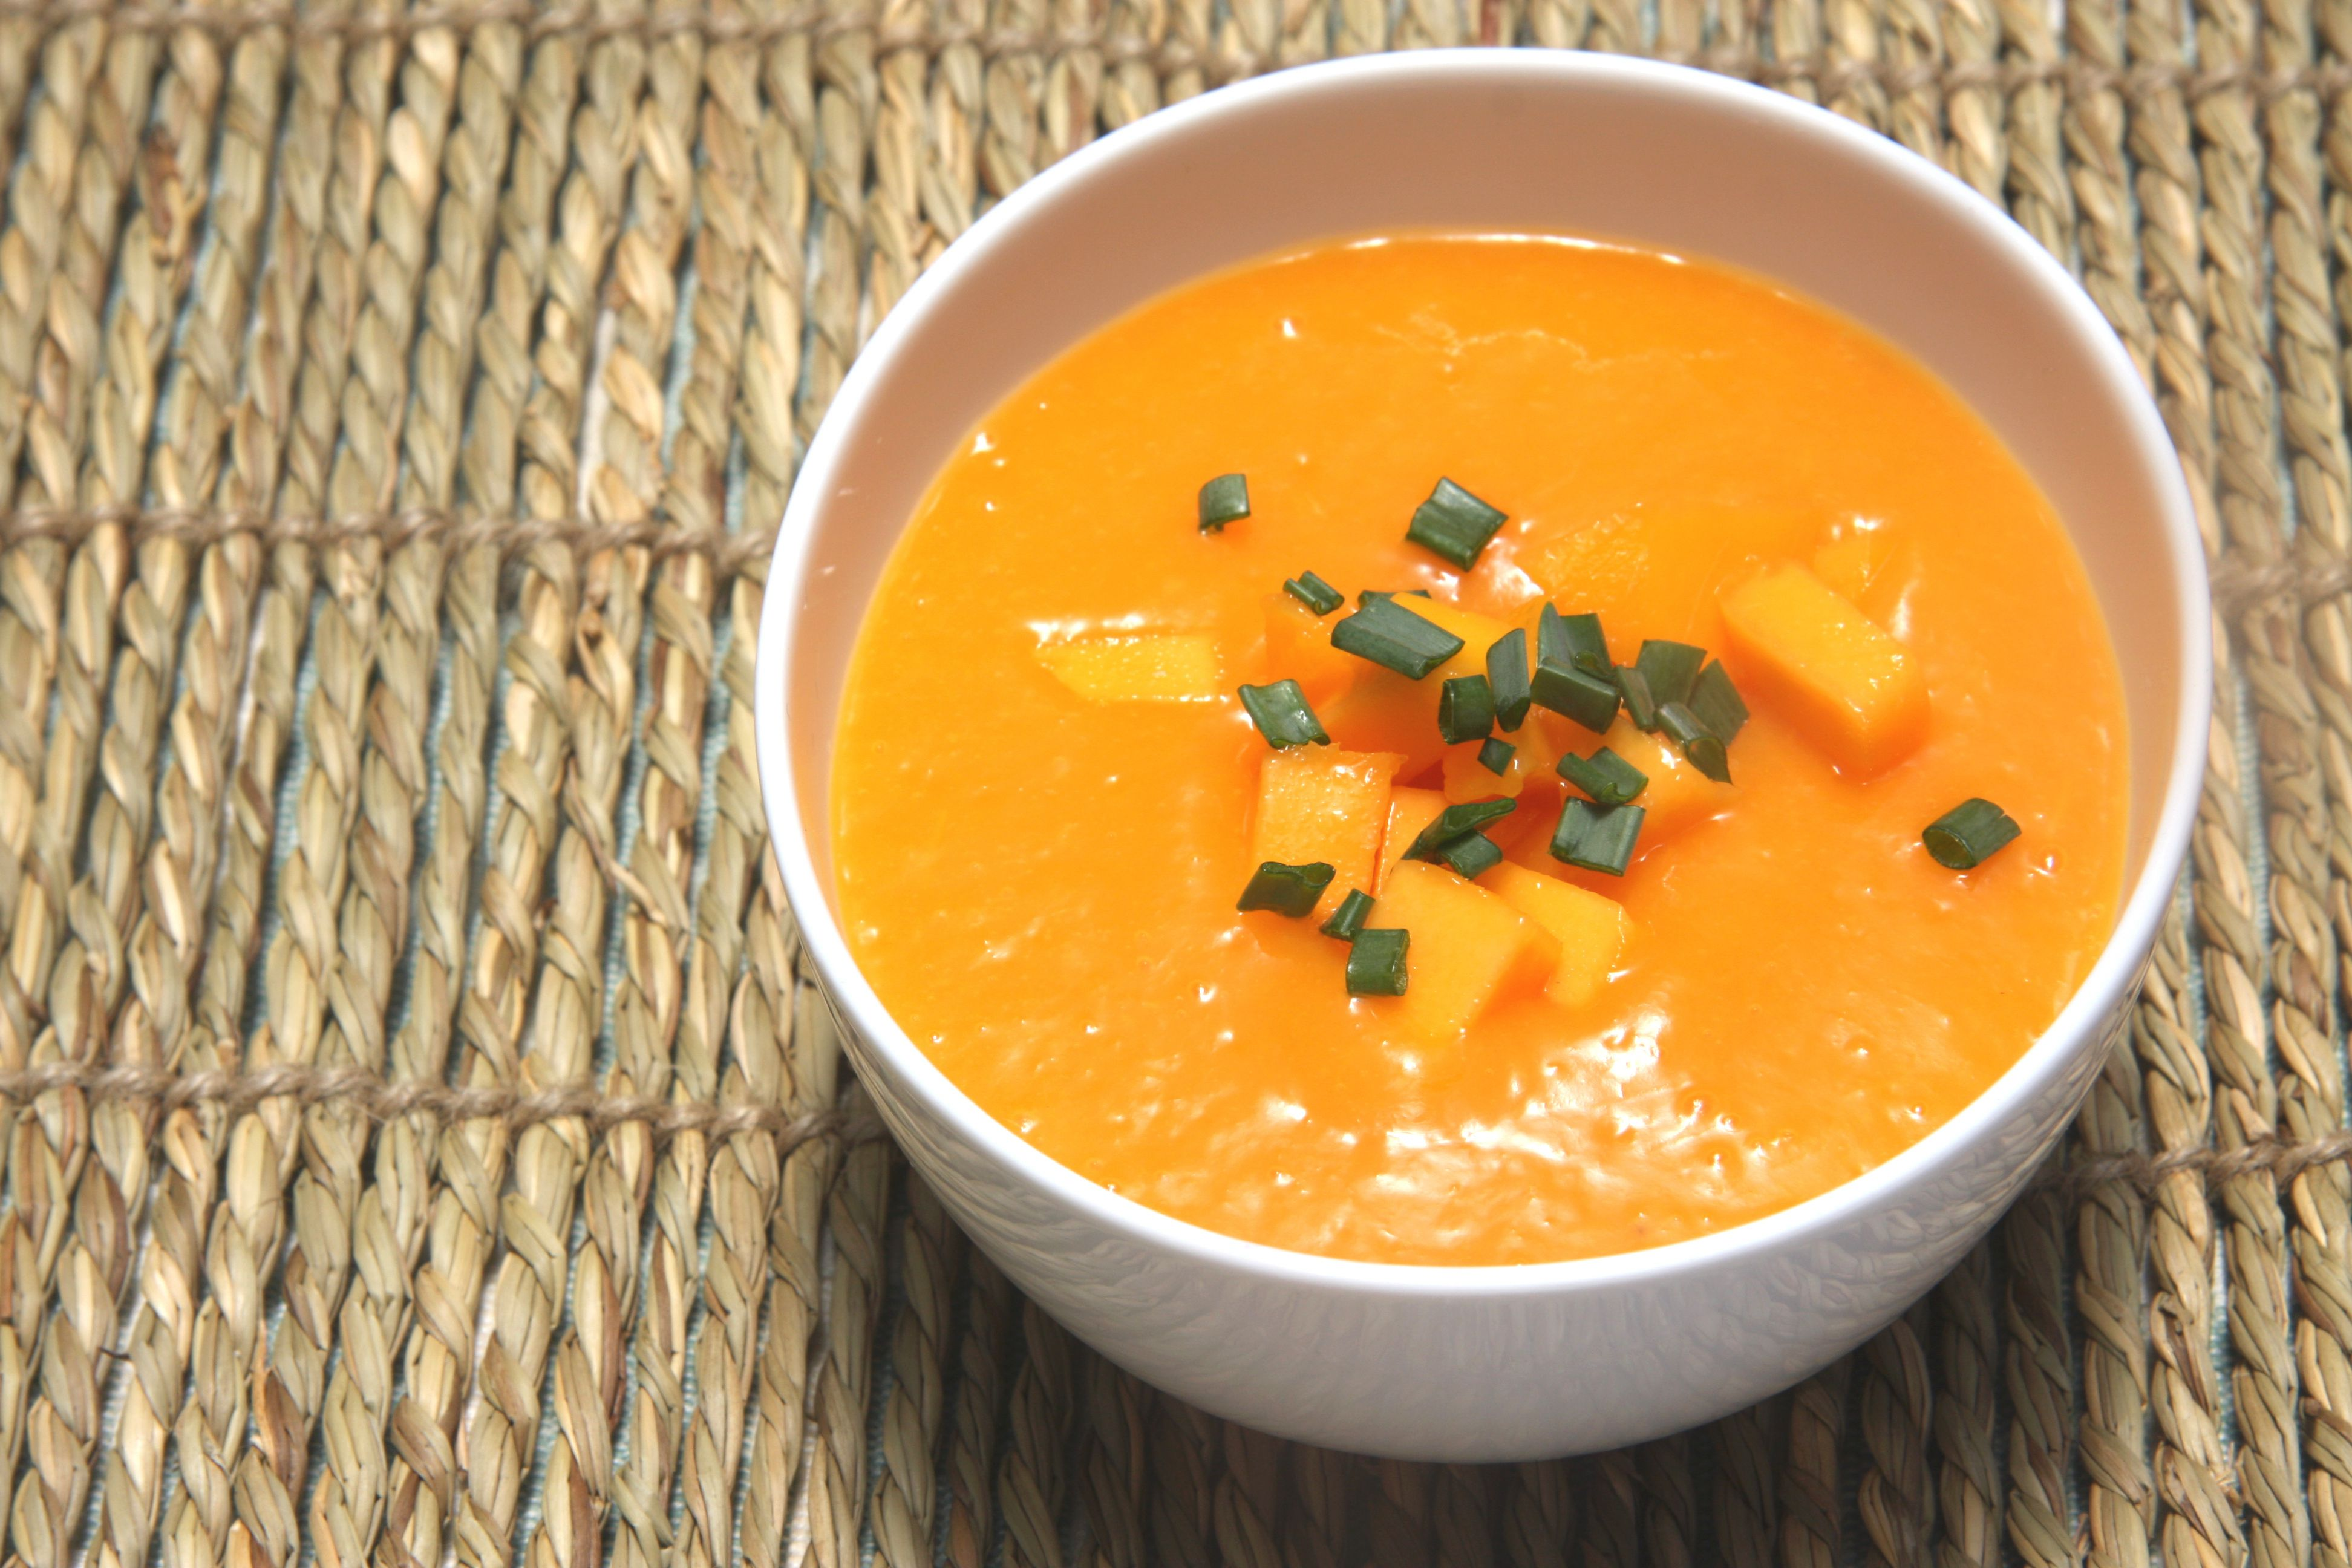 Easy Homemade Raw Vegan Soup Recipes With Pictures